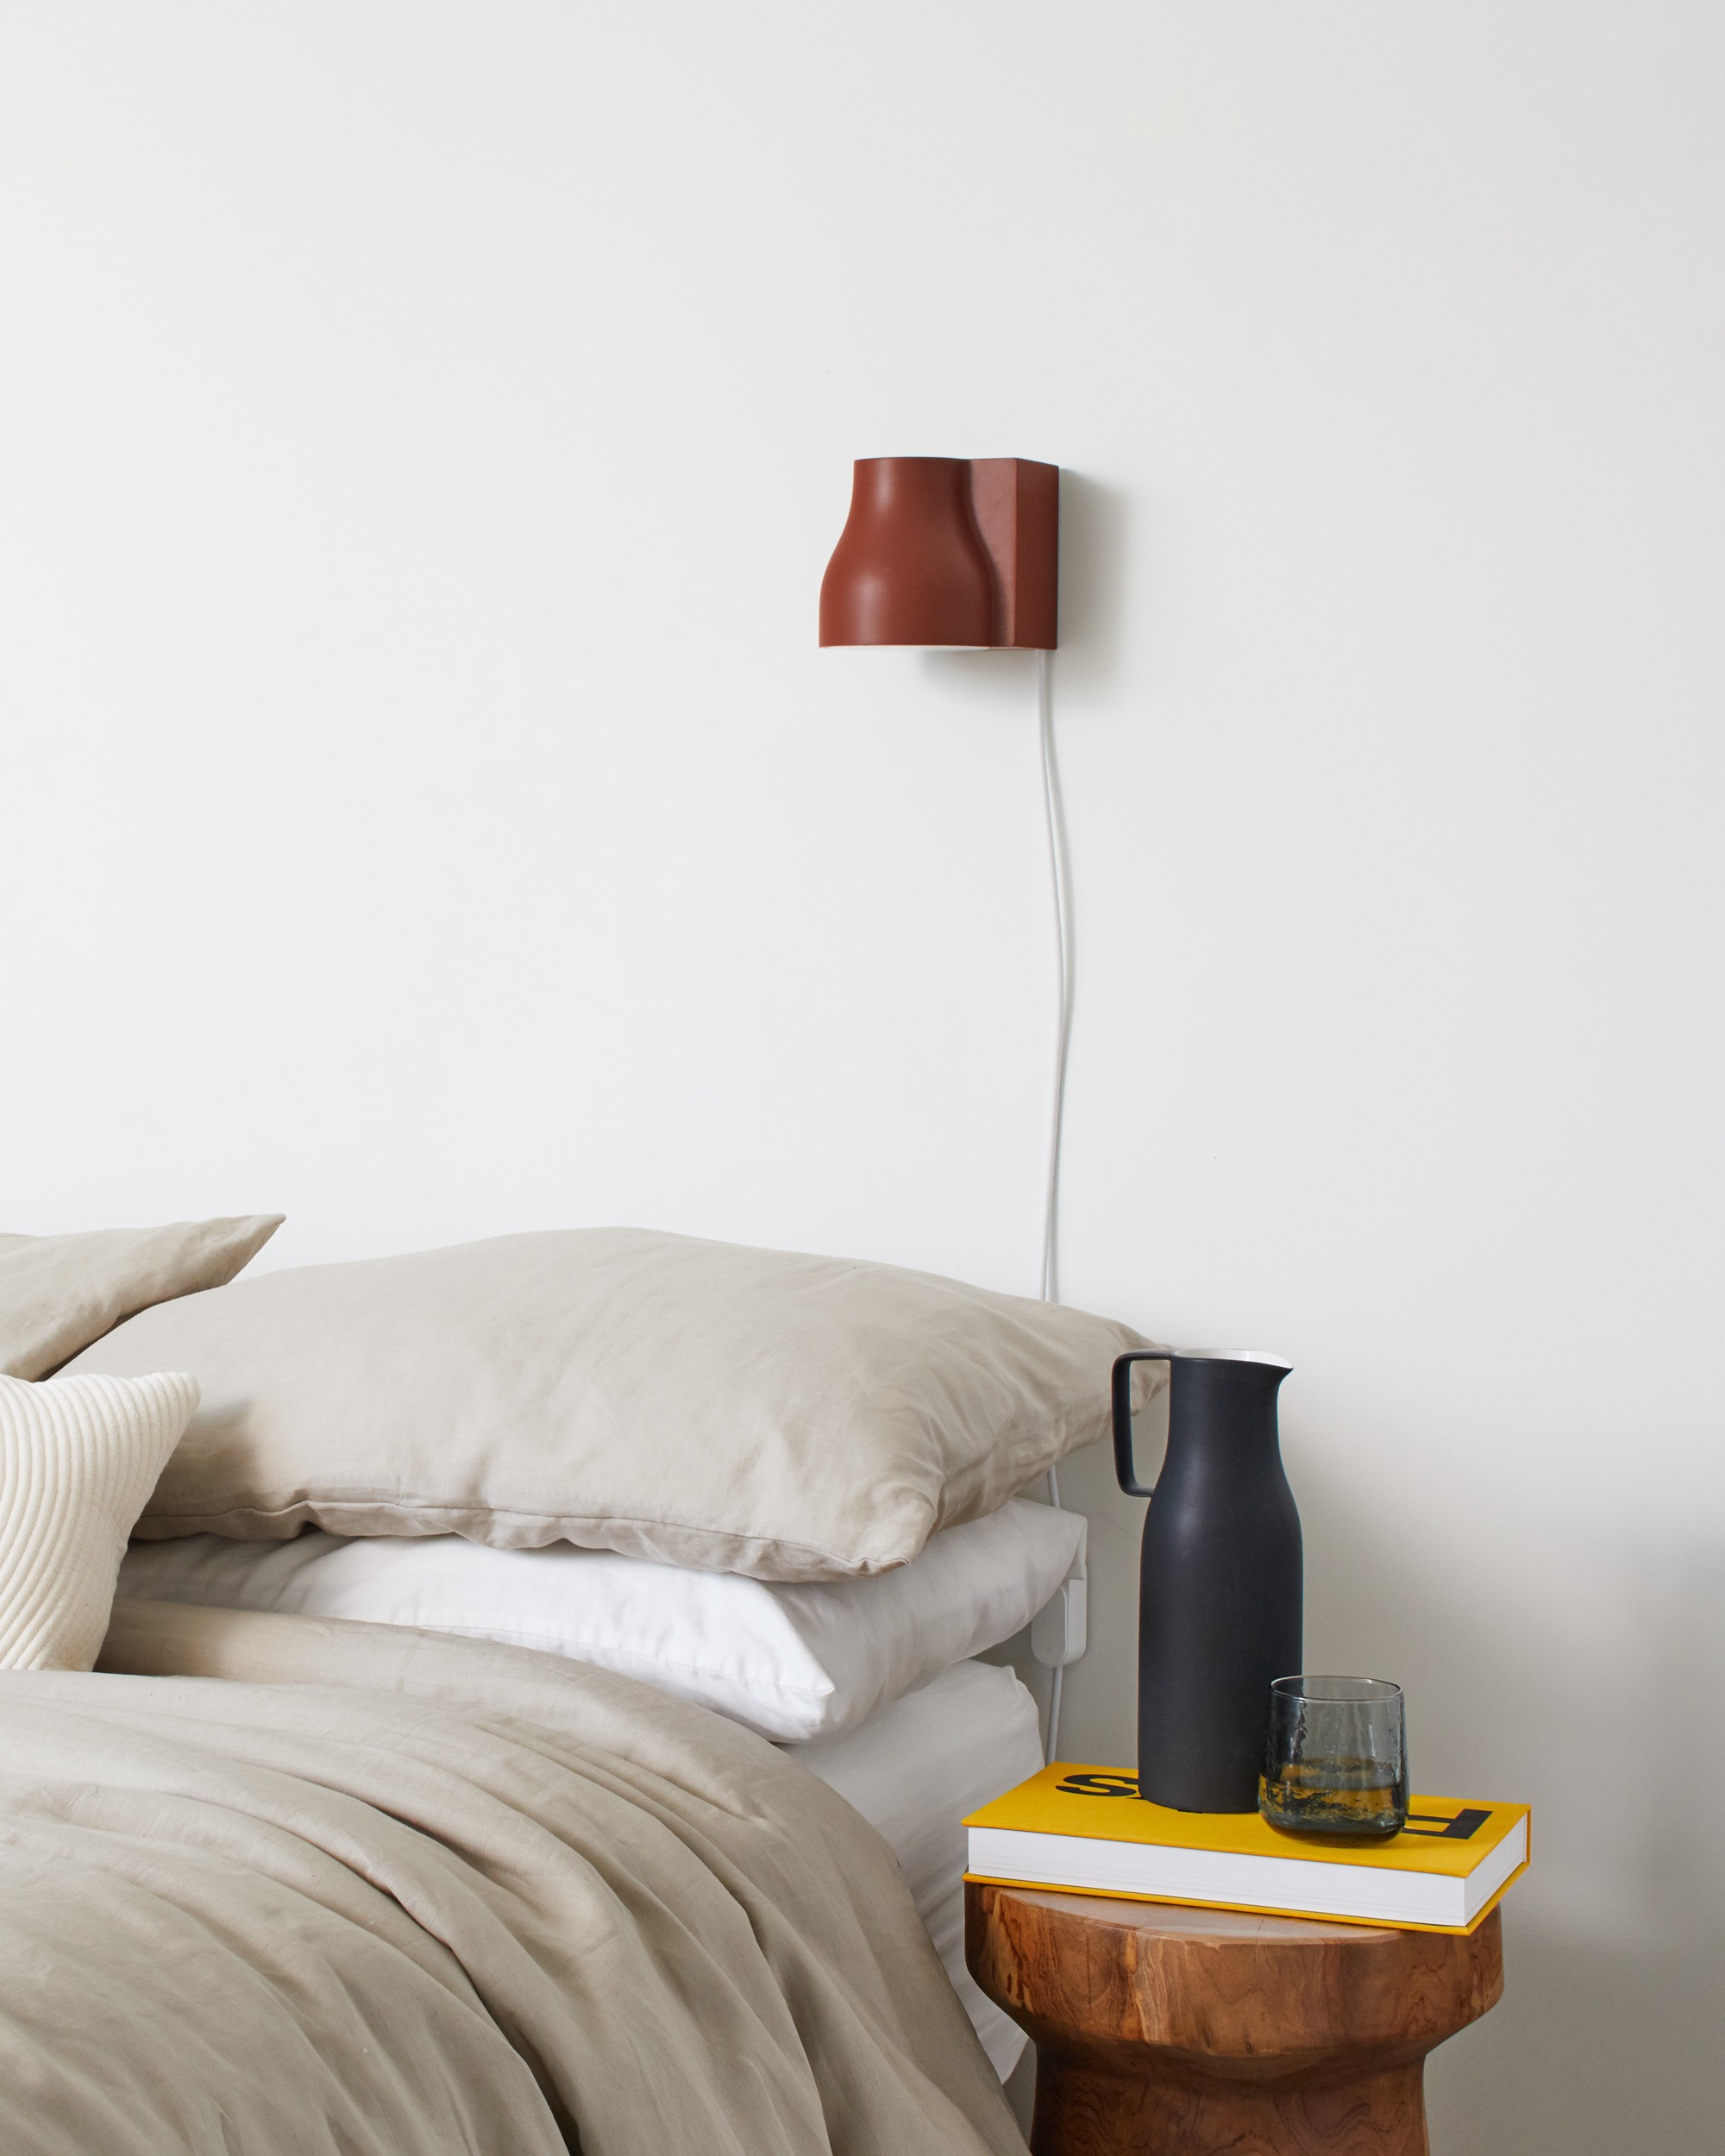 Wall mounted light above bed